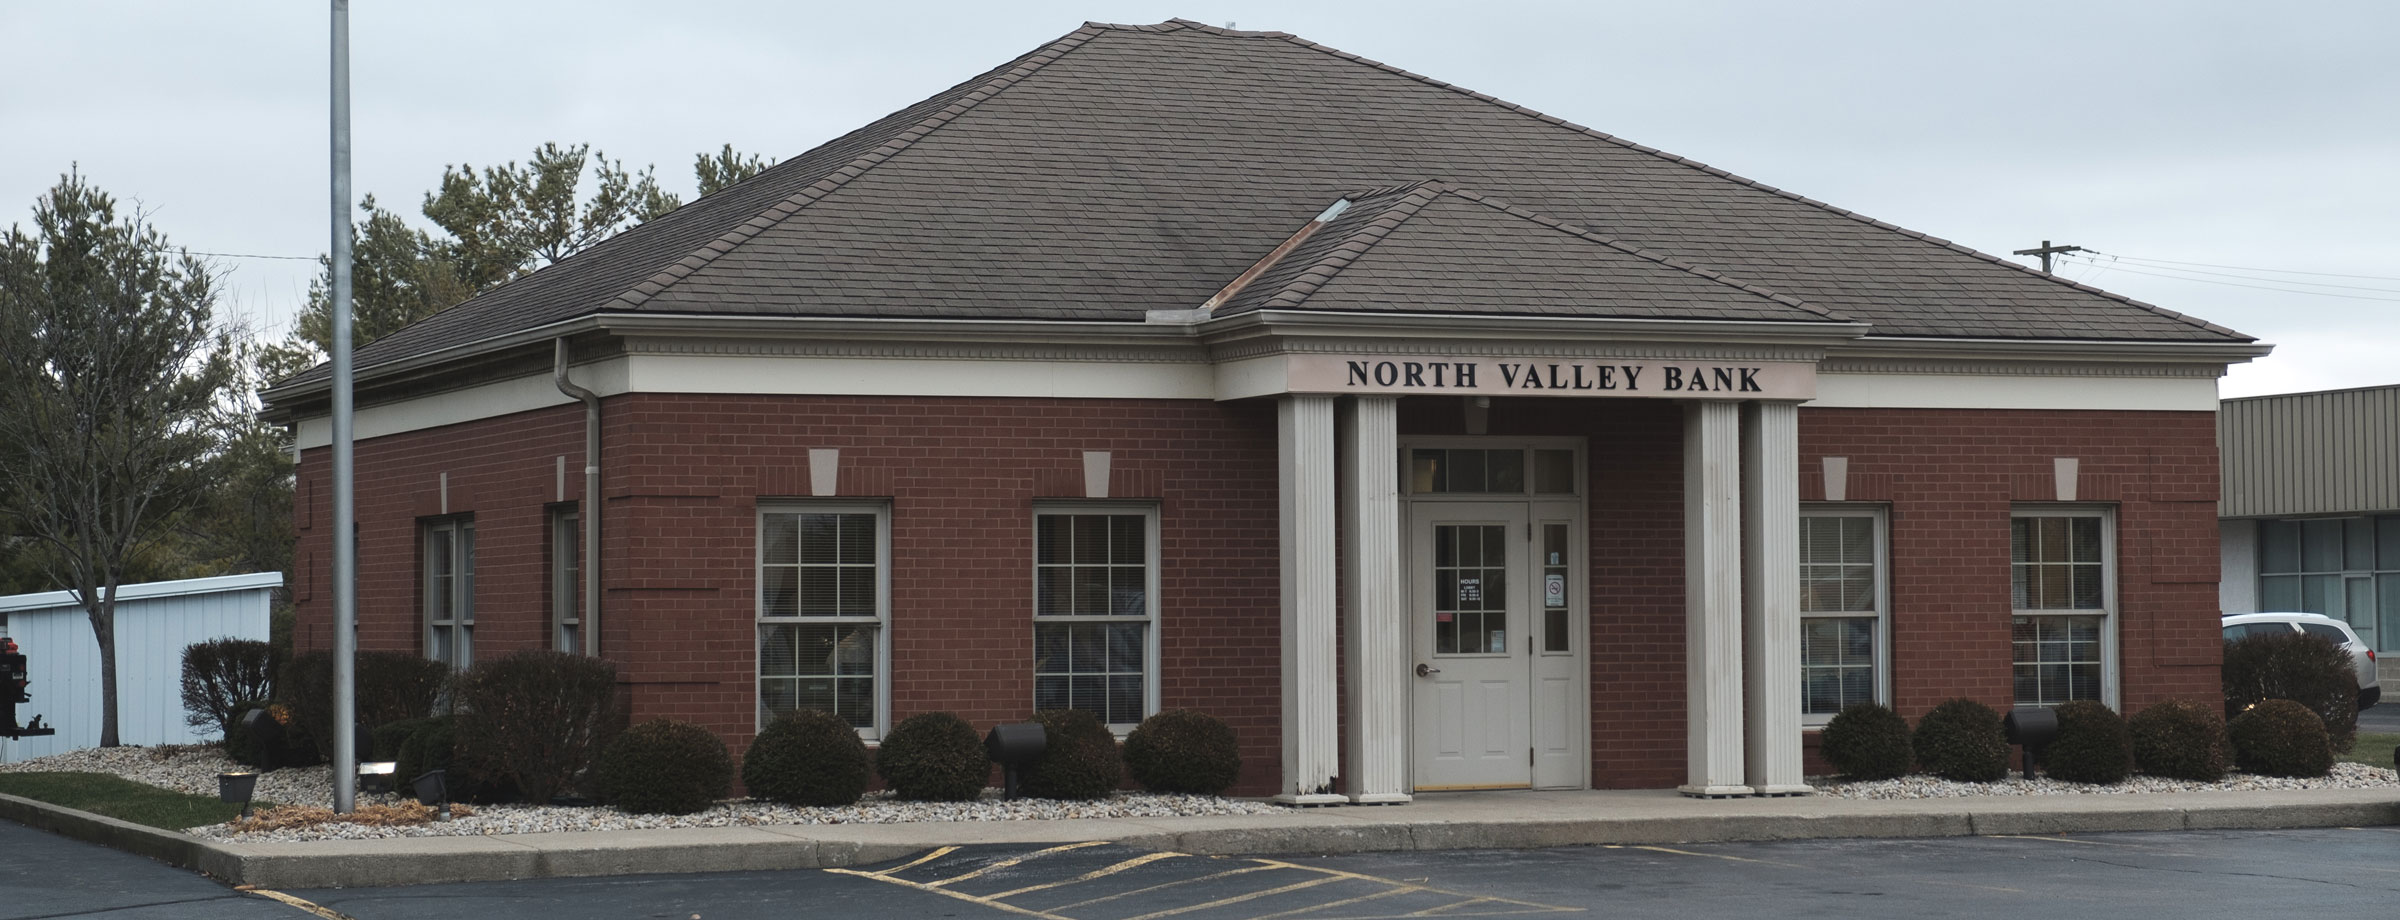 North Valley Bank Southeastern Ohio Mount Sterling Office